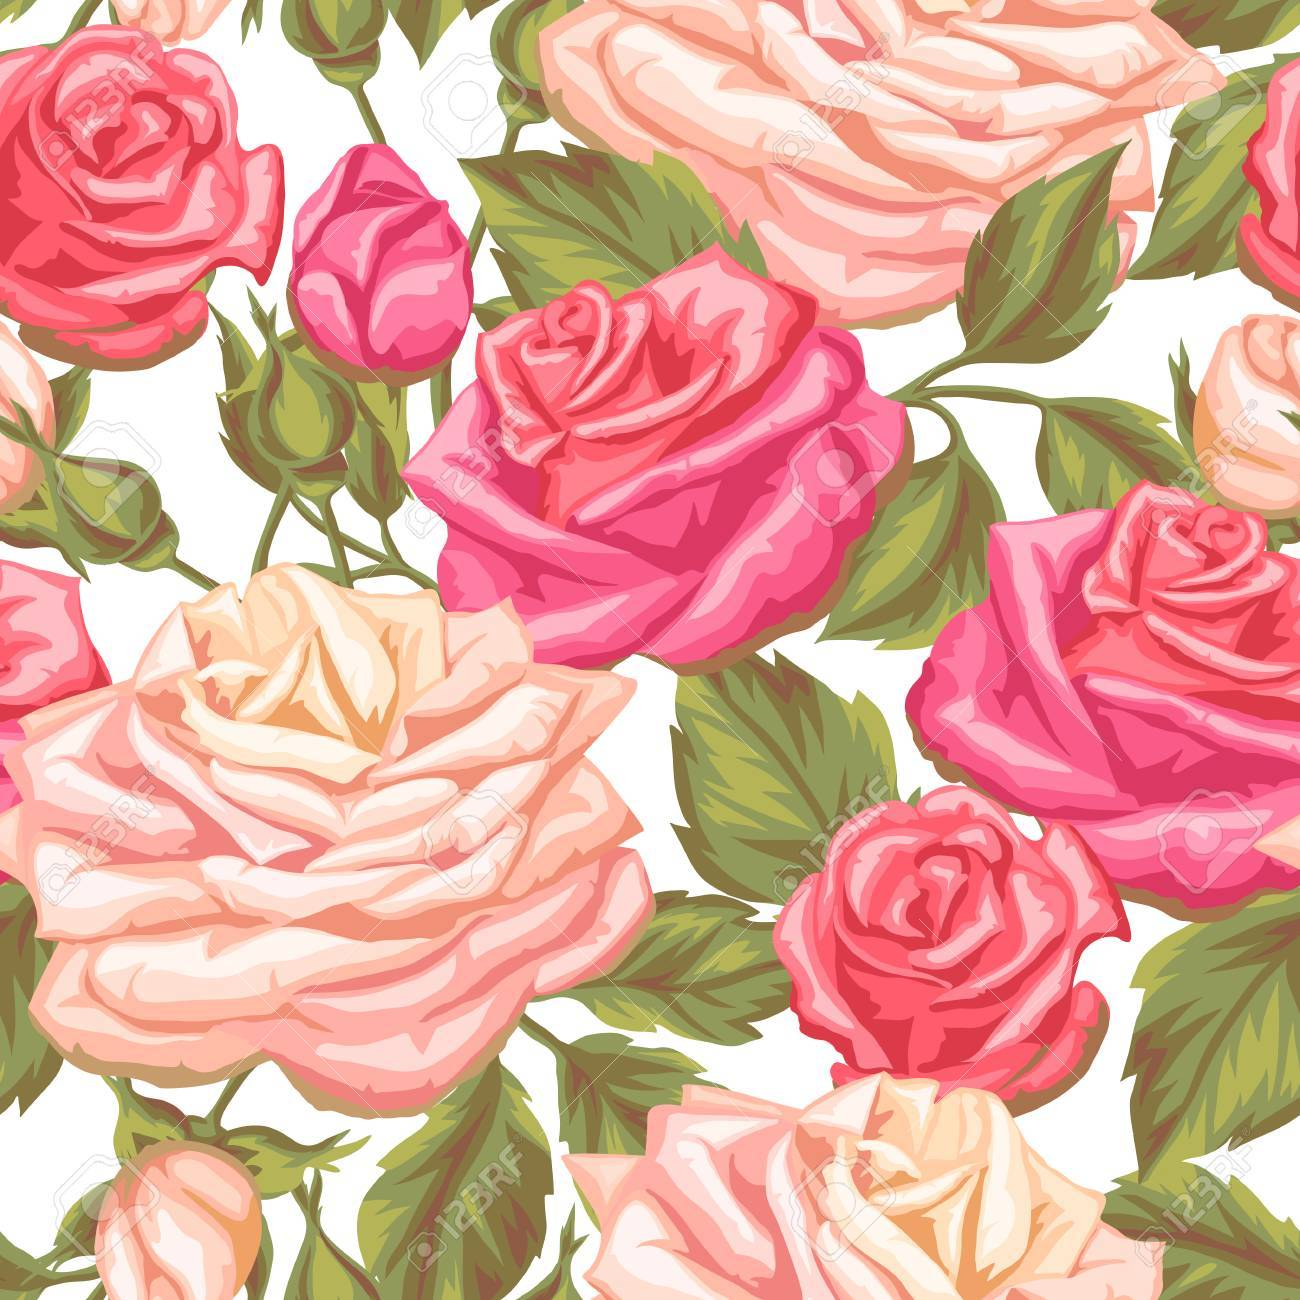 Seamless pattern with vintage roses decorative retro flowers seamless pattern with vintage roses decorative retro flowers easy to use for backdrop mightylinksfo